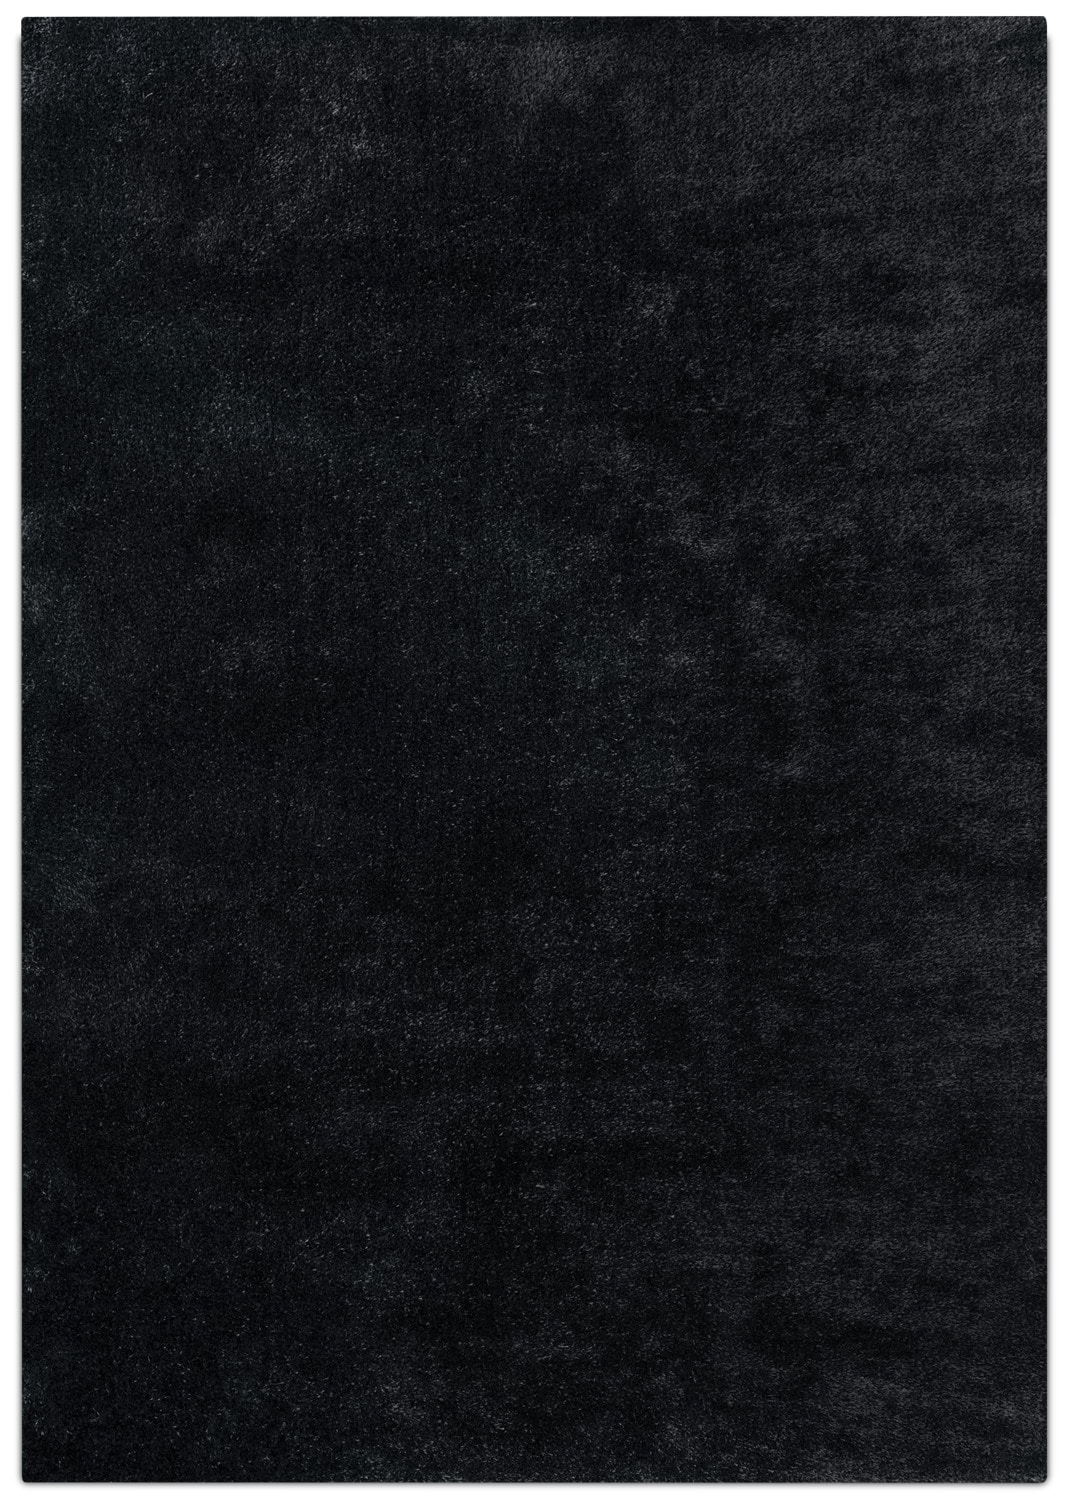 Daisy 5' X 8' Area Rug - Black